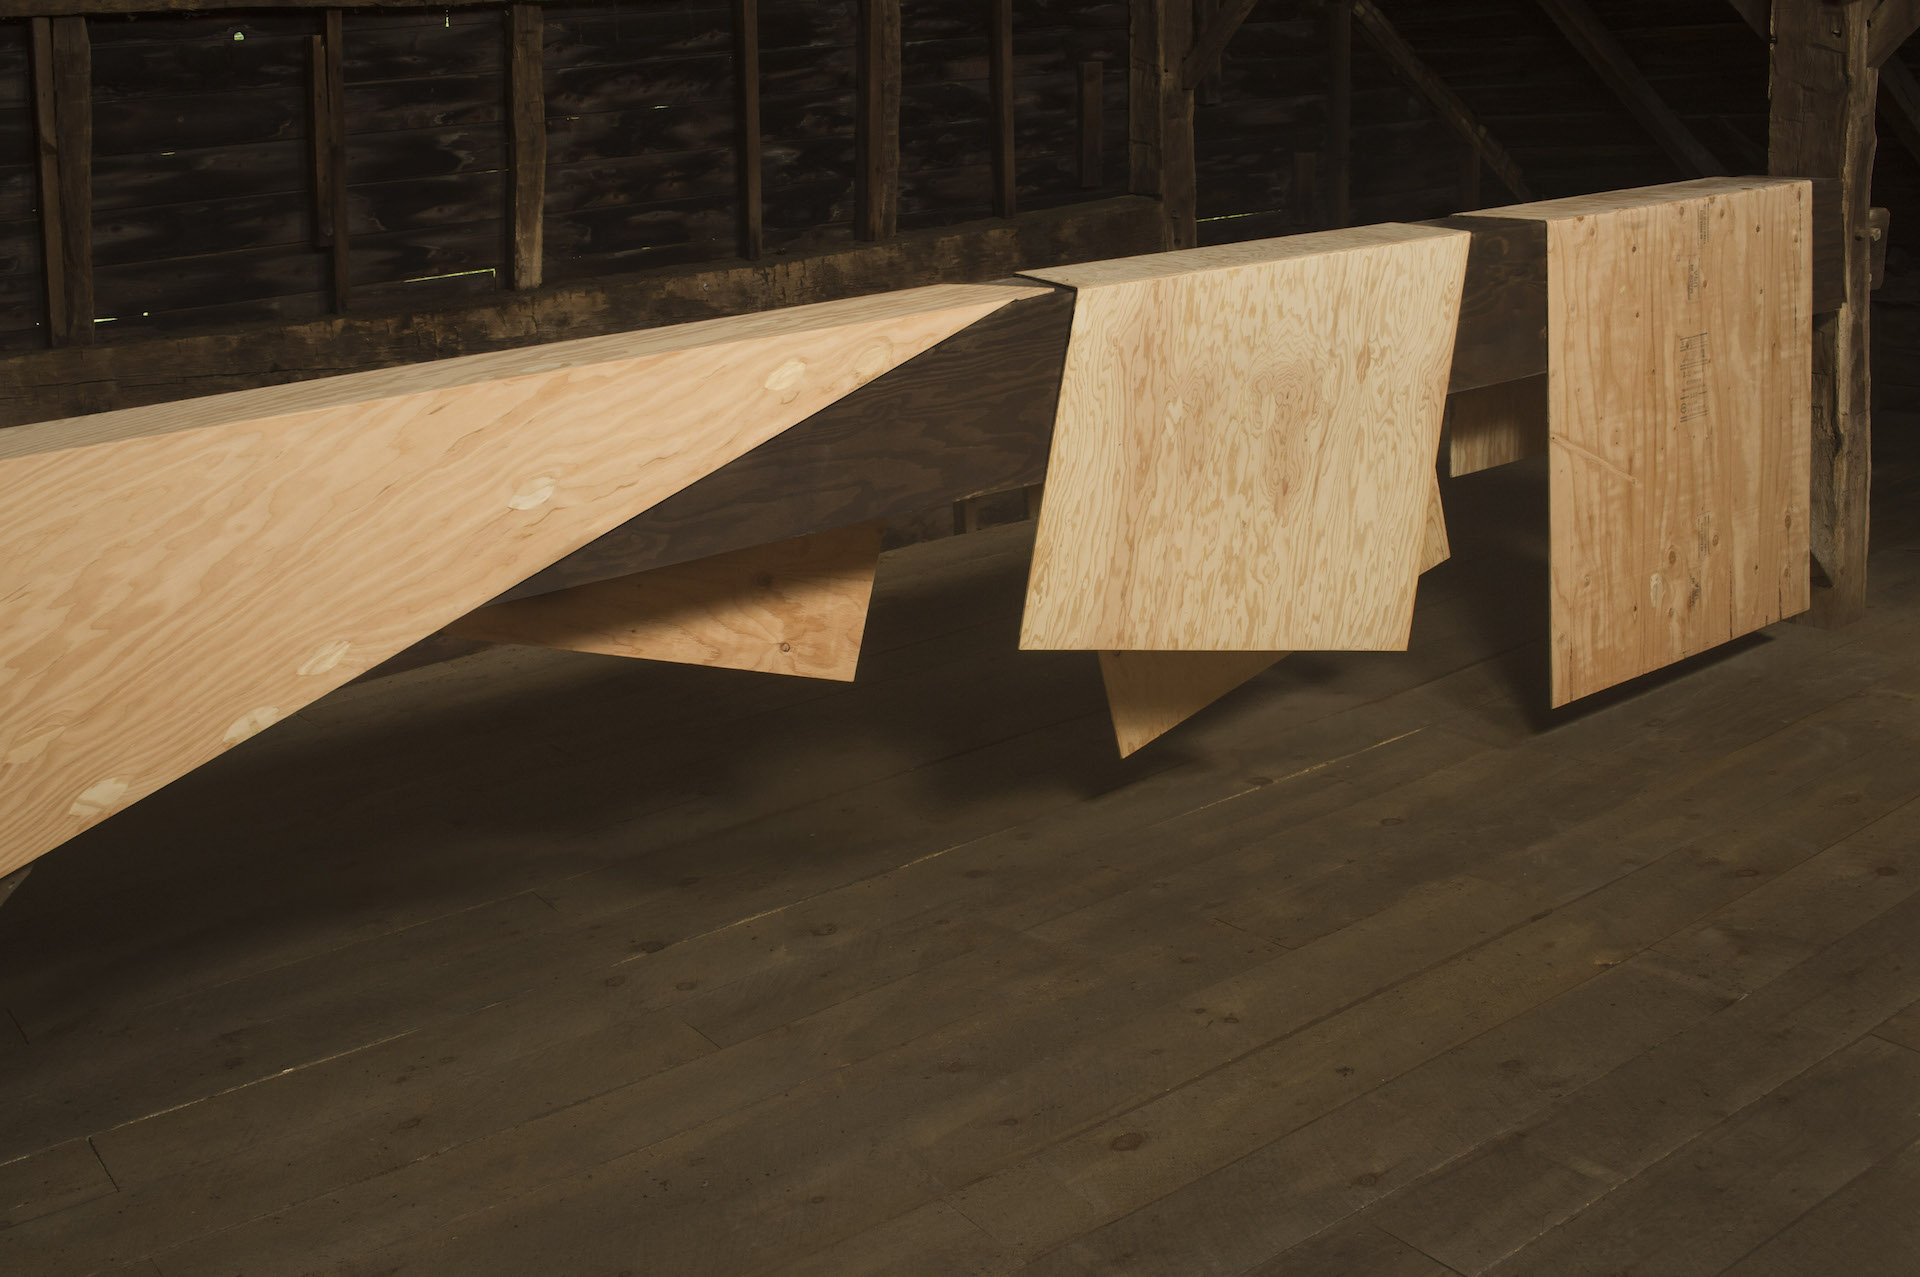 Folded Plywood 25, 26 and 27